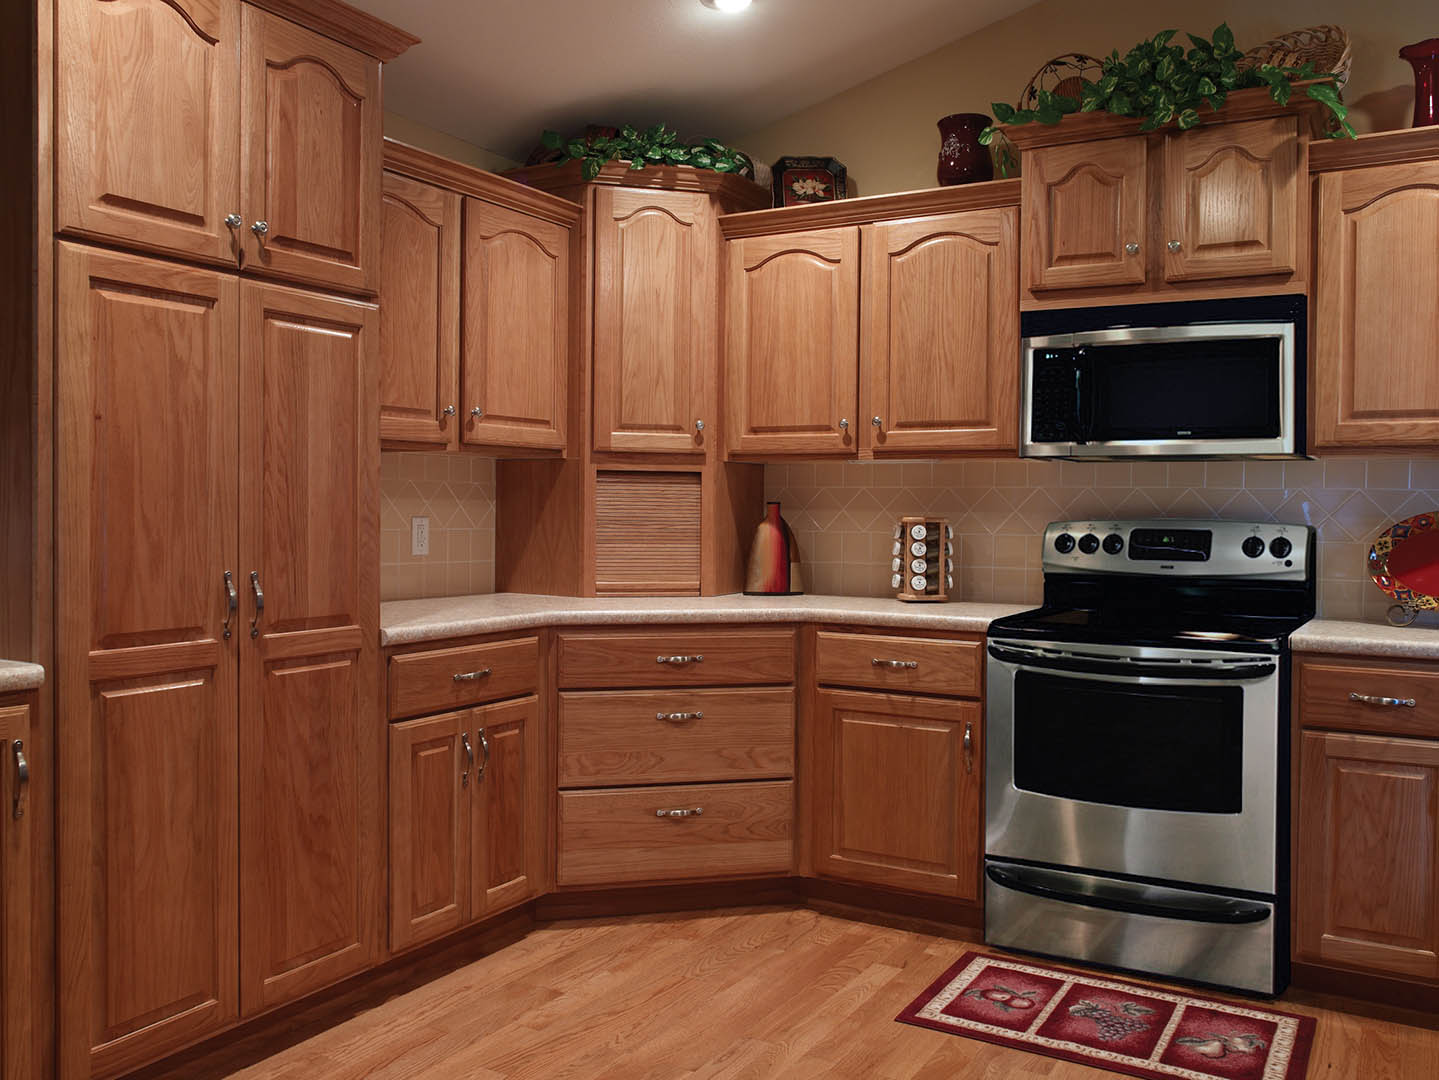 wood stains for kitchen cabinets Gallery Aspect Cabinetry